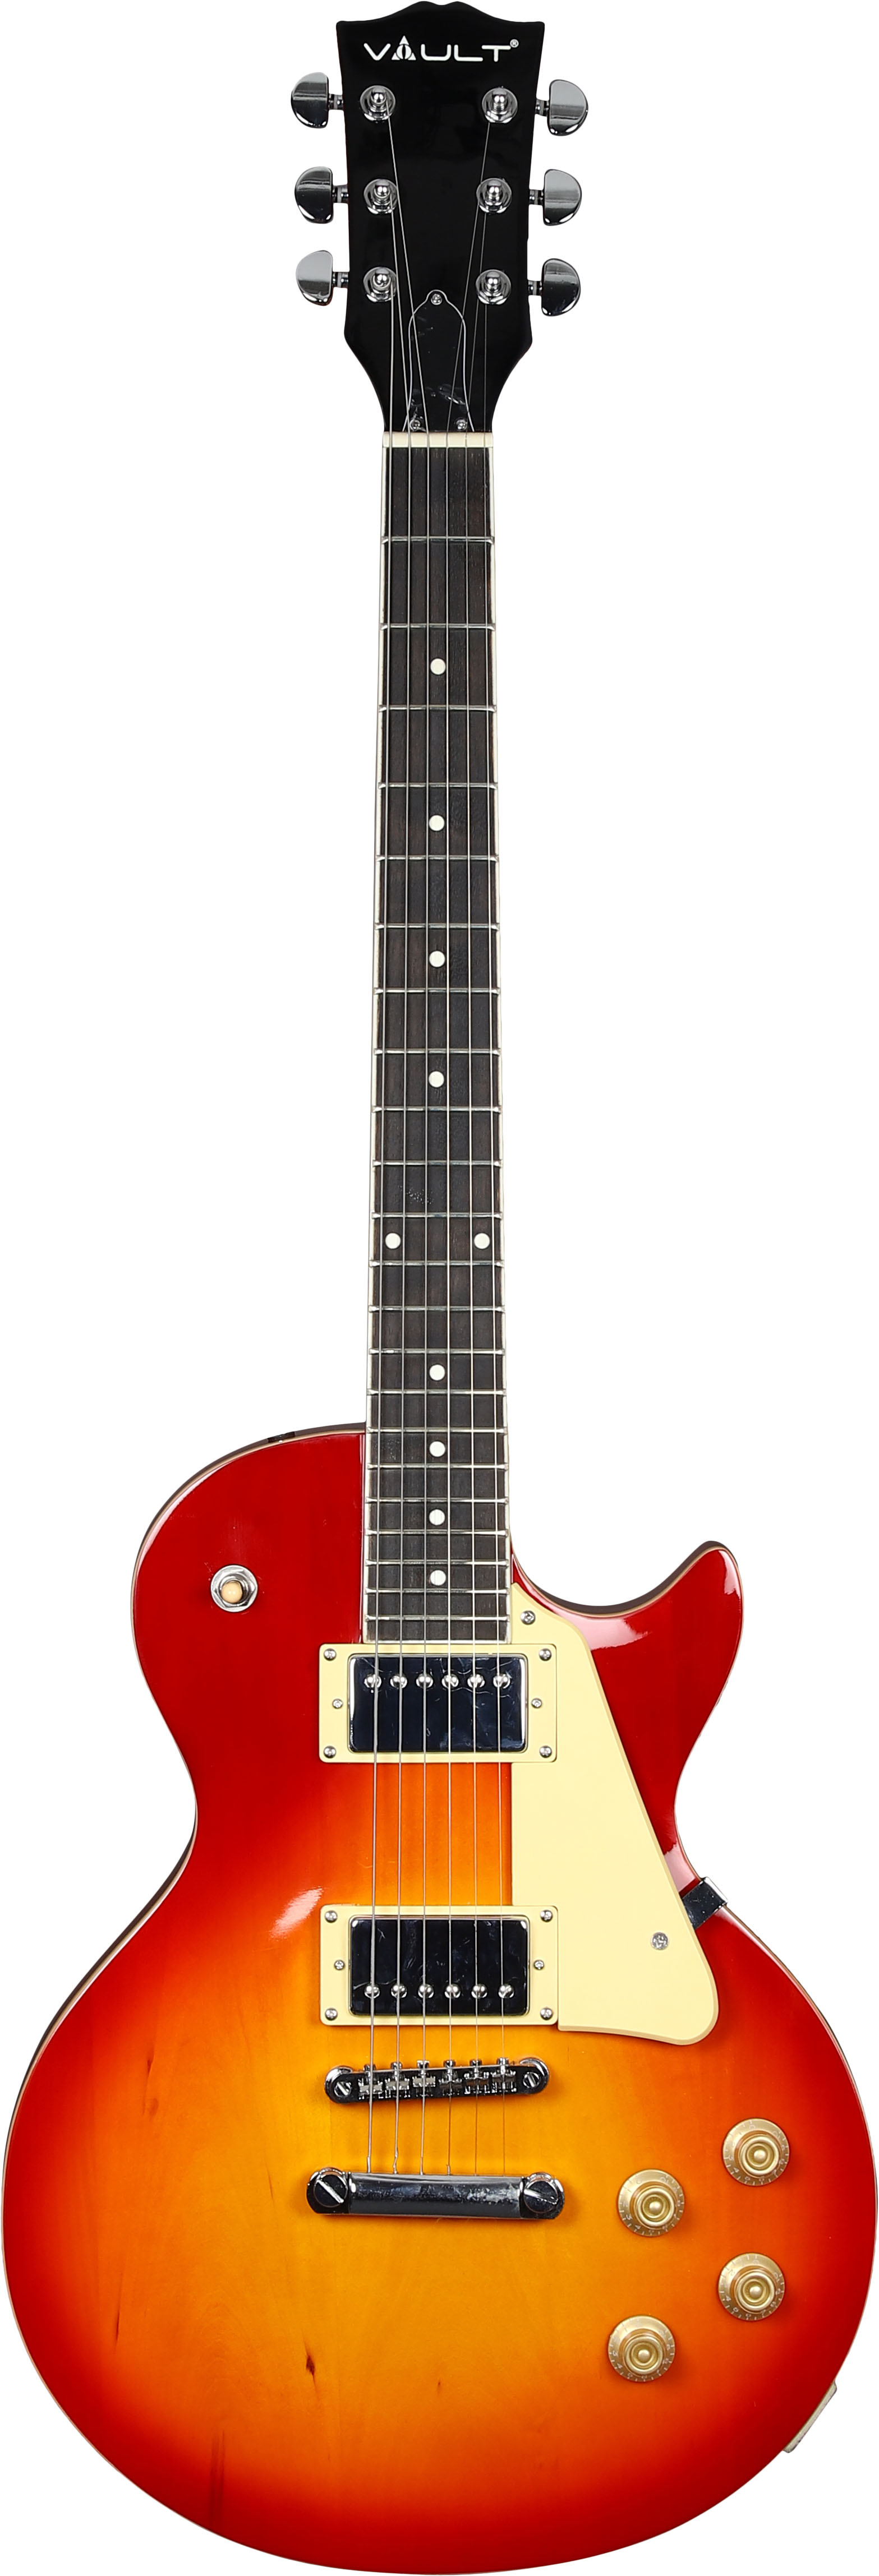 Vault-LP1-Ovangkol-Fretboard-Electric-Guitar-Cherry-Red-Burst-w-Gig-Bag thumbnail 2